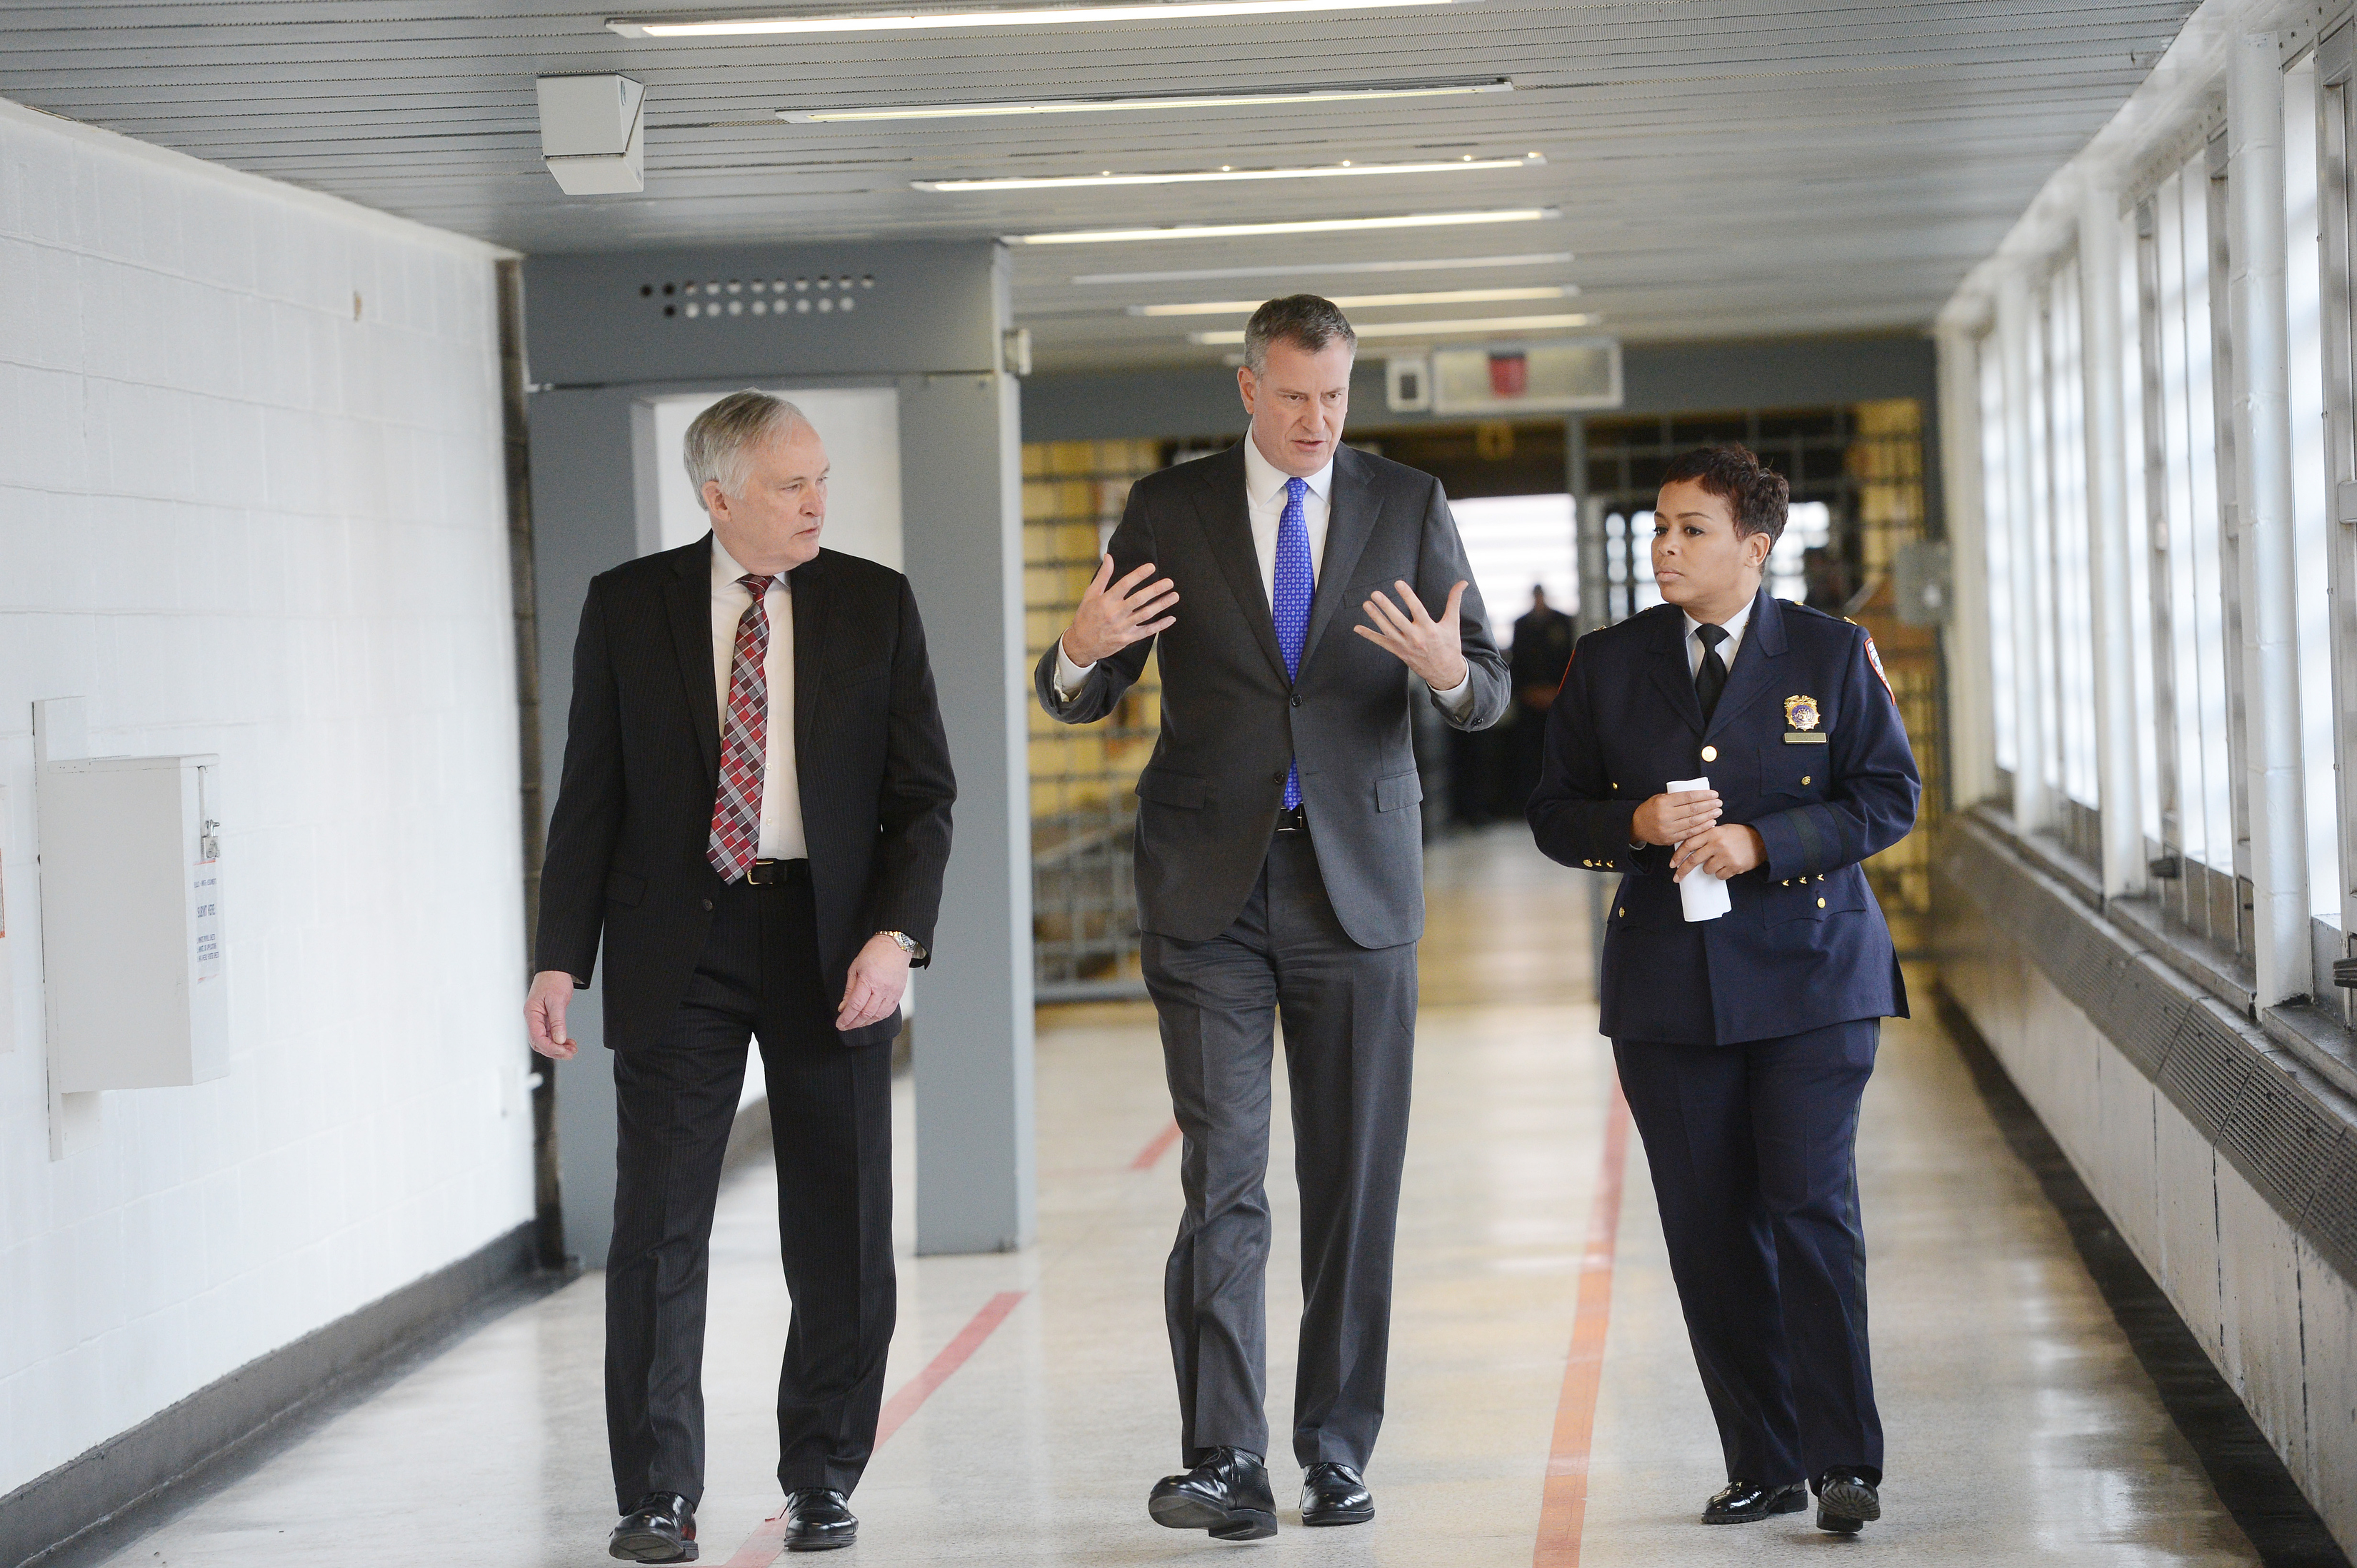 New York City Mayor Bill de Blasio, joined by Department Correction Commissioner Joe Ponte and Warden Becky Scott, talk during his tour of Second Chance Housing at Rikers Island on December 17, 2014 in New York City.